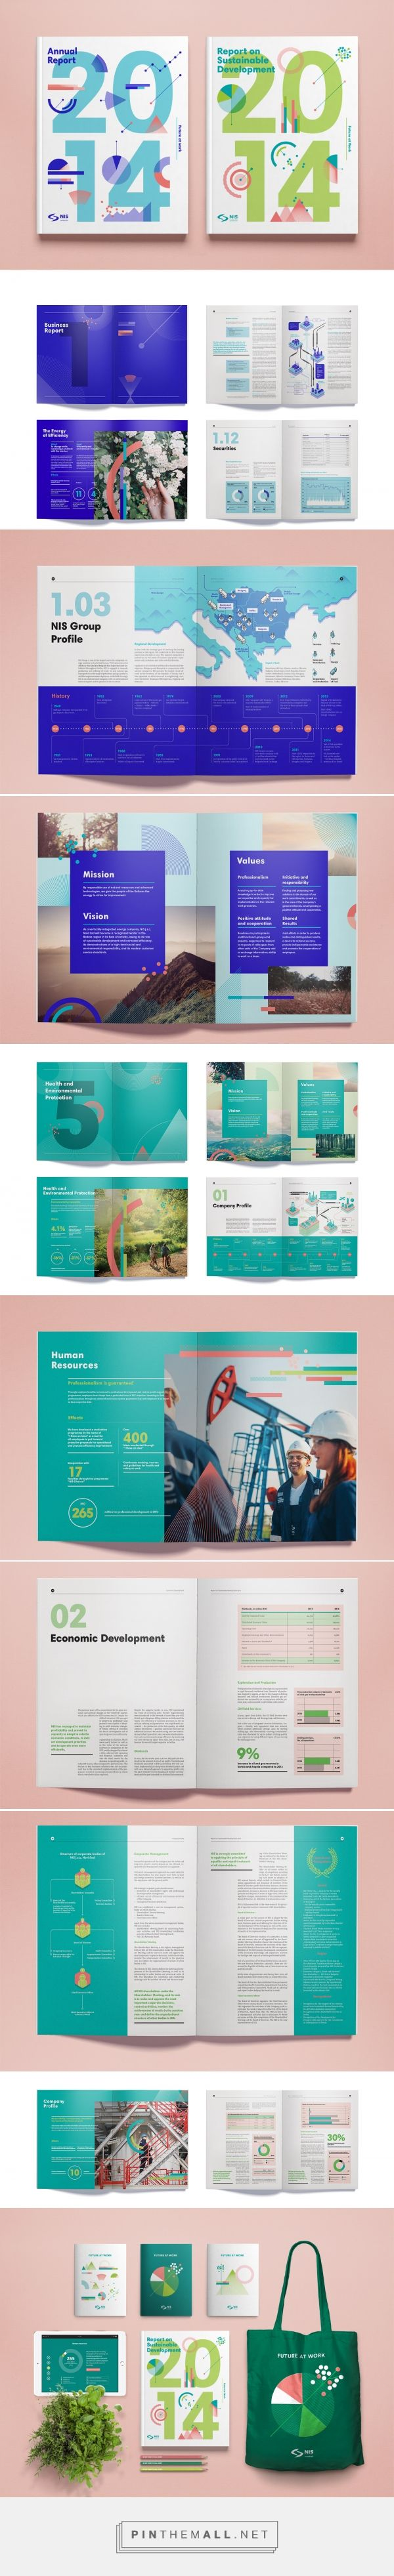 NIS Annual Report 2014 on Behance                              …